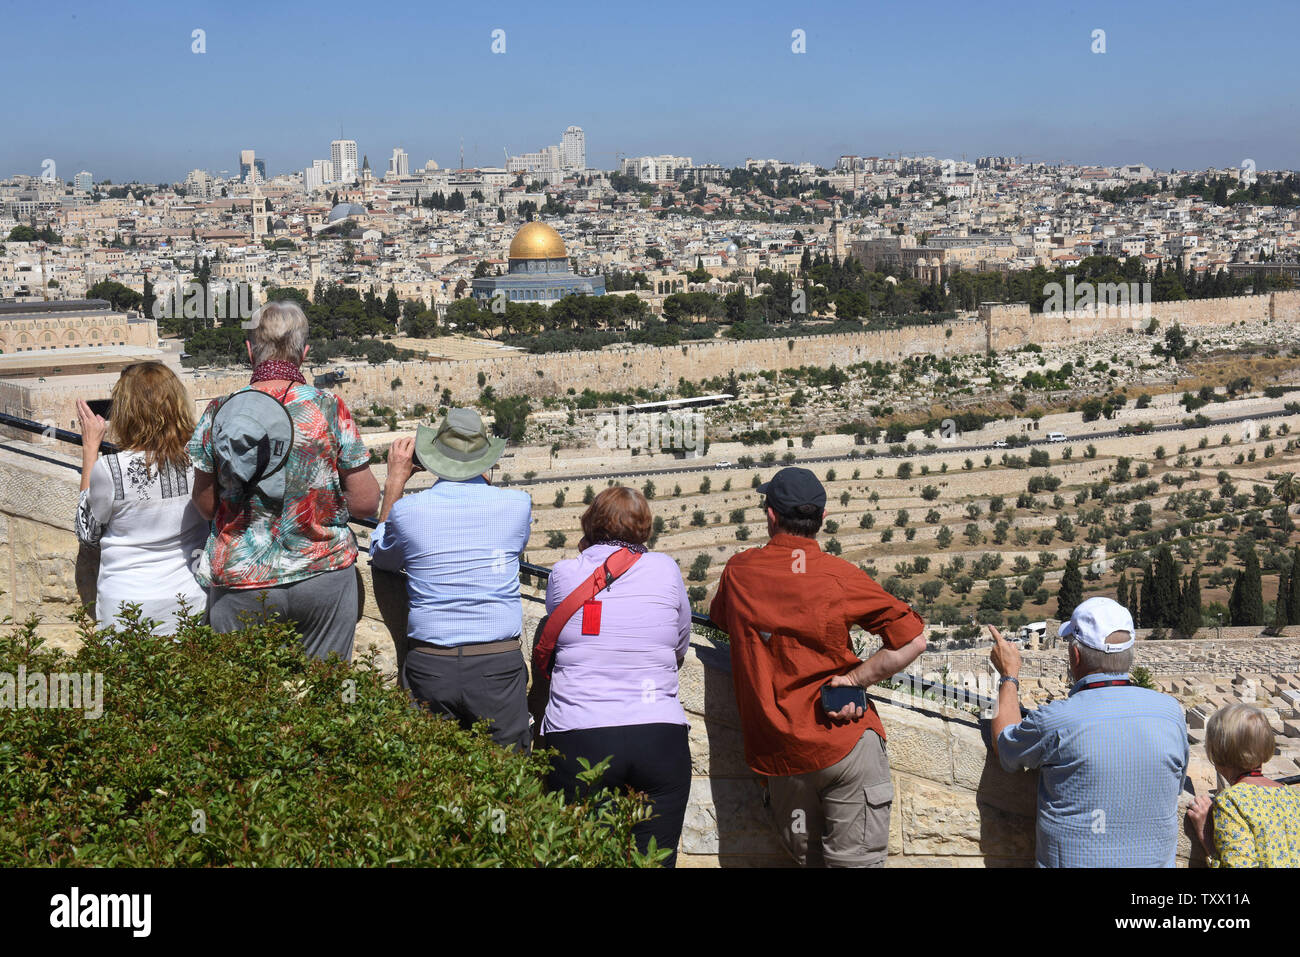 Tourists look at the Old City of Jerusalem from the Mt. of Olives, in East Jerusalem, June 25, 2018. Prince William will  receive a briefing on the history and geography of Jerusalem's Old City from the Mt. of Olives this week, on the first state visit to the Holy Land by a member of the royal family. Israeli ministers slammed Prince William's official itinerary because it describes the Old City of Jerusalem as being in Occupied Palestinian Territories.  Photo by Debbie Hill/UPI - Stock Image